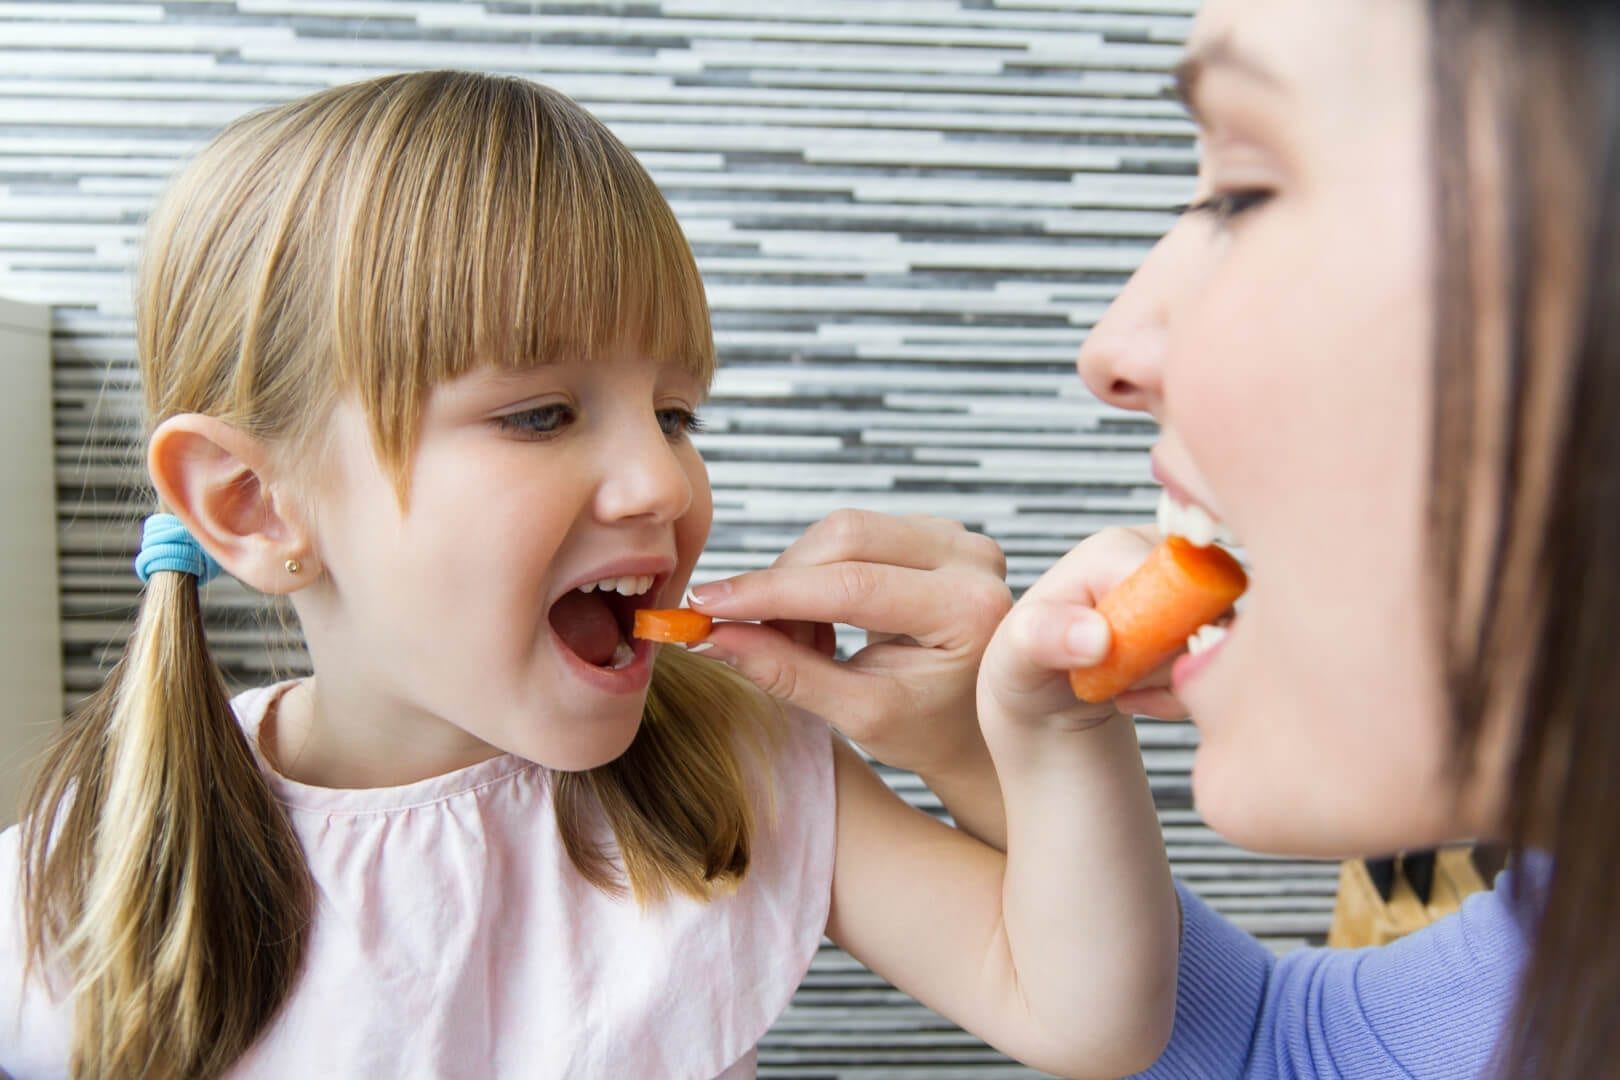 parent and child practicing healthy eating habits